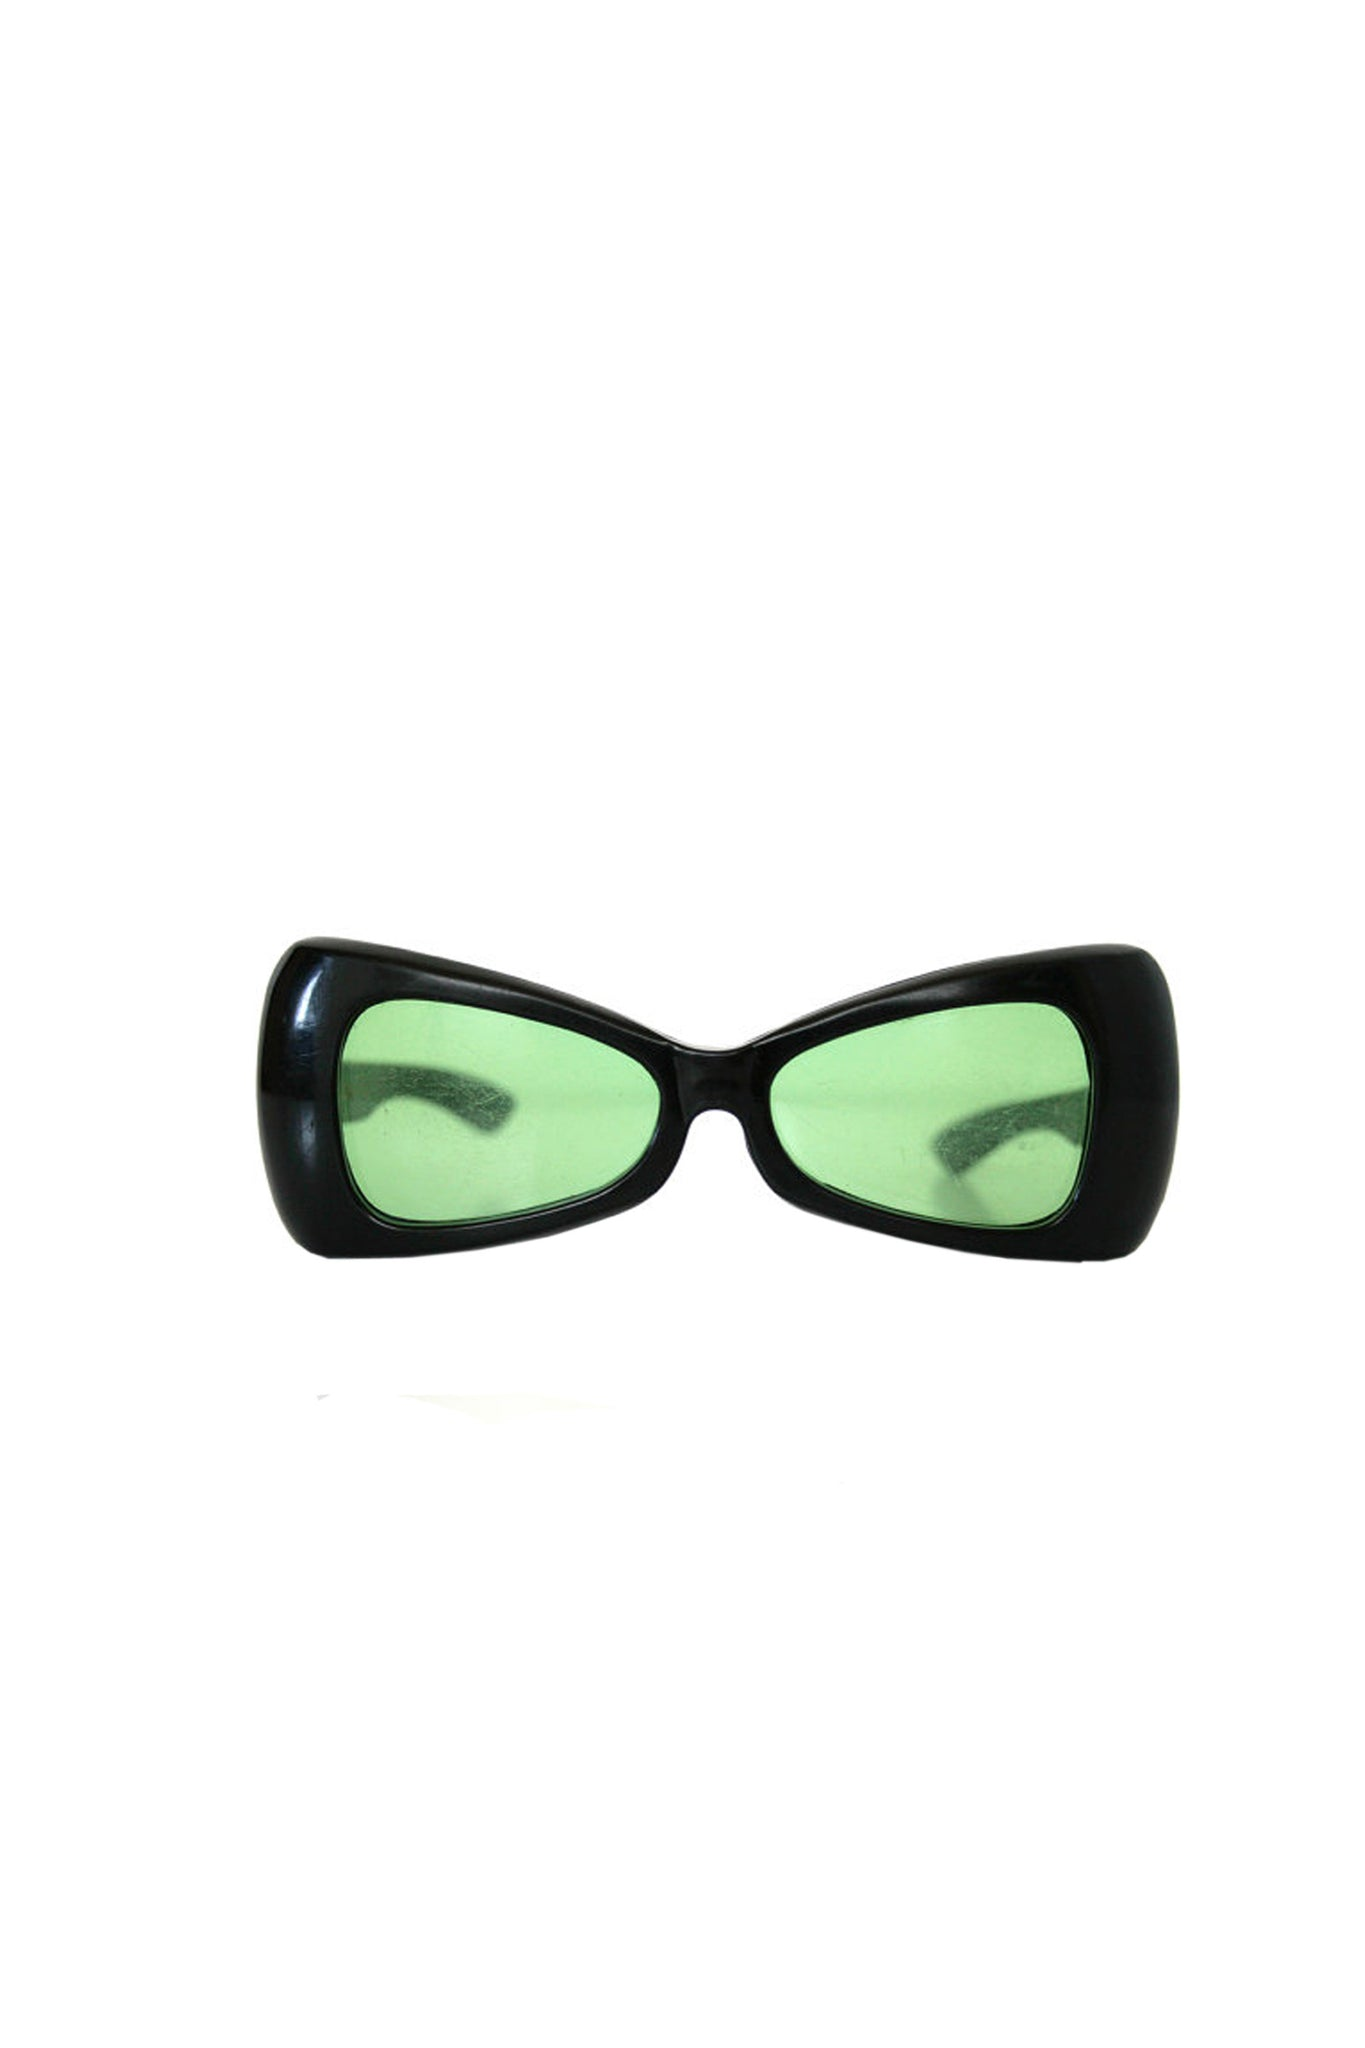 Retro 60's black sunglasses  - SoLovesVintage